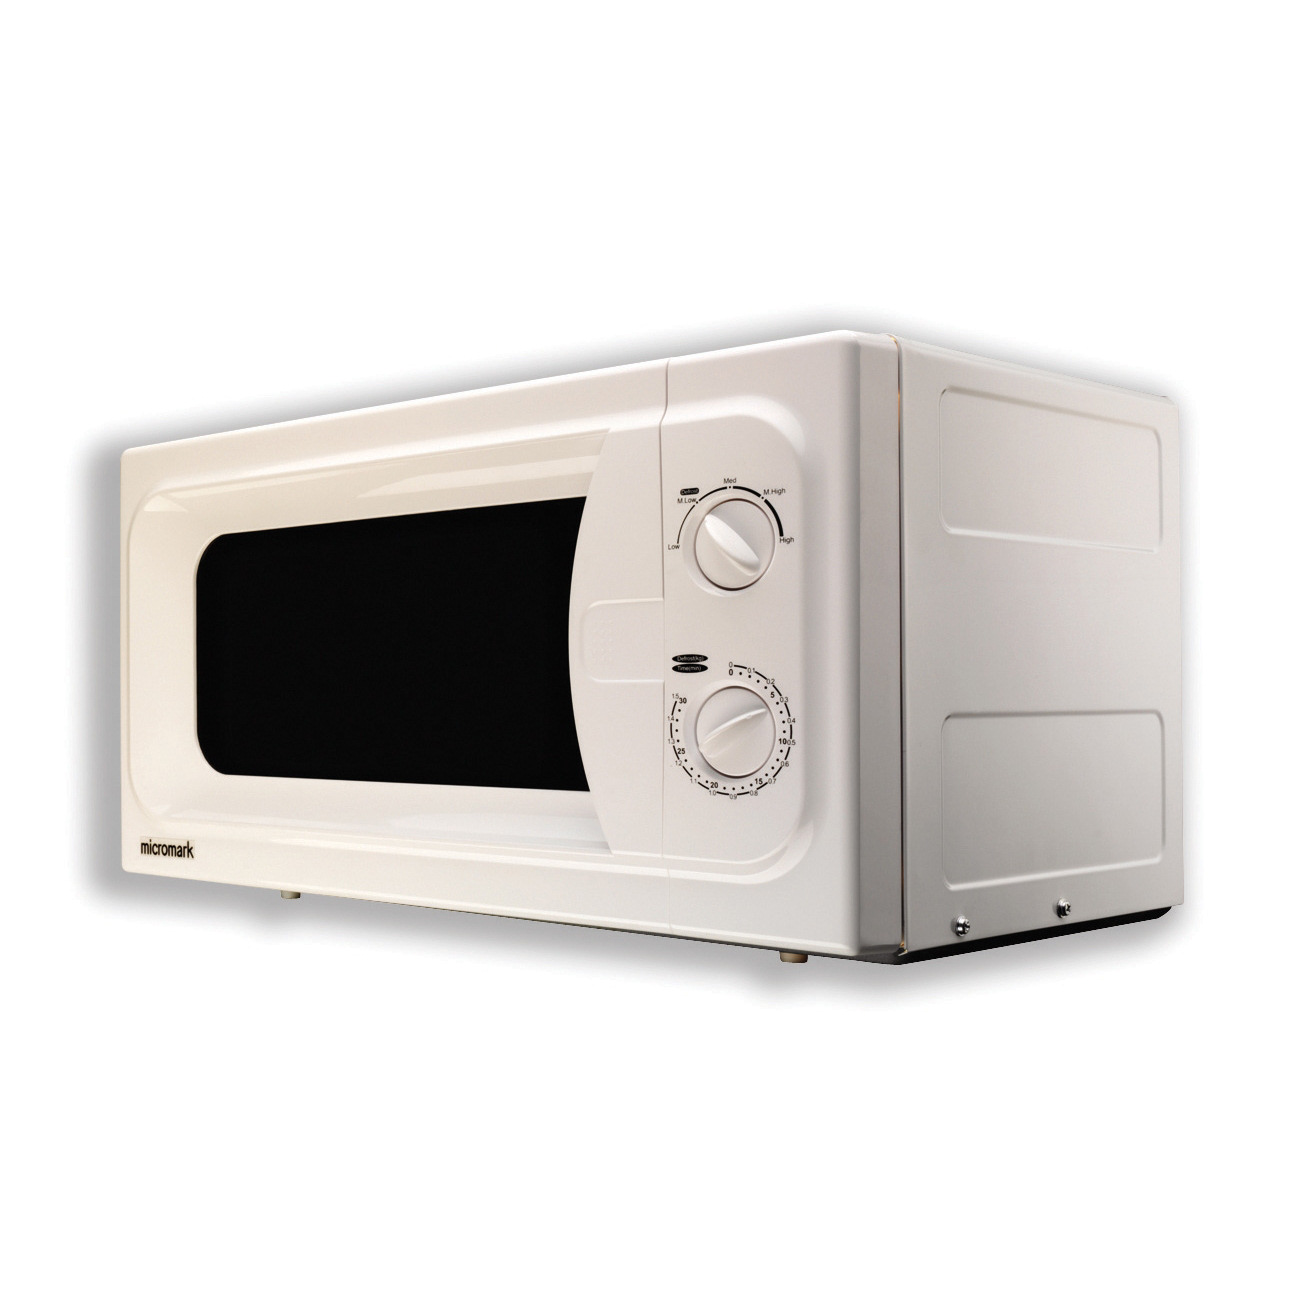 Microwave 700W 20litre Manual Control MM55540